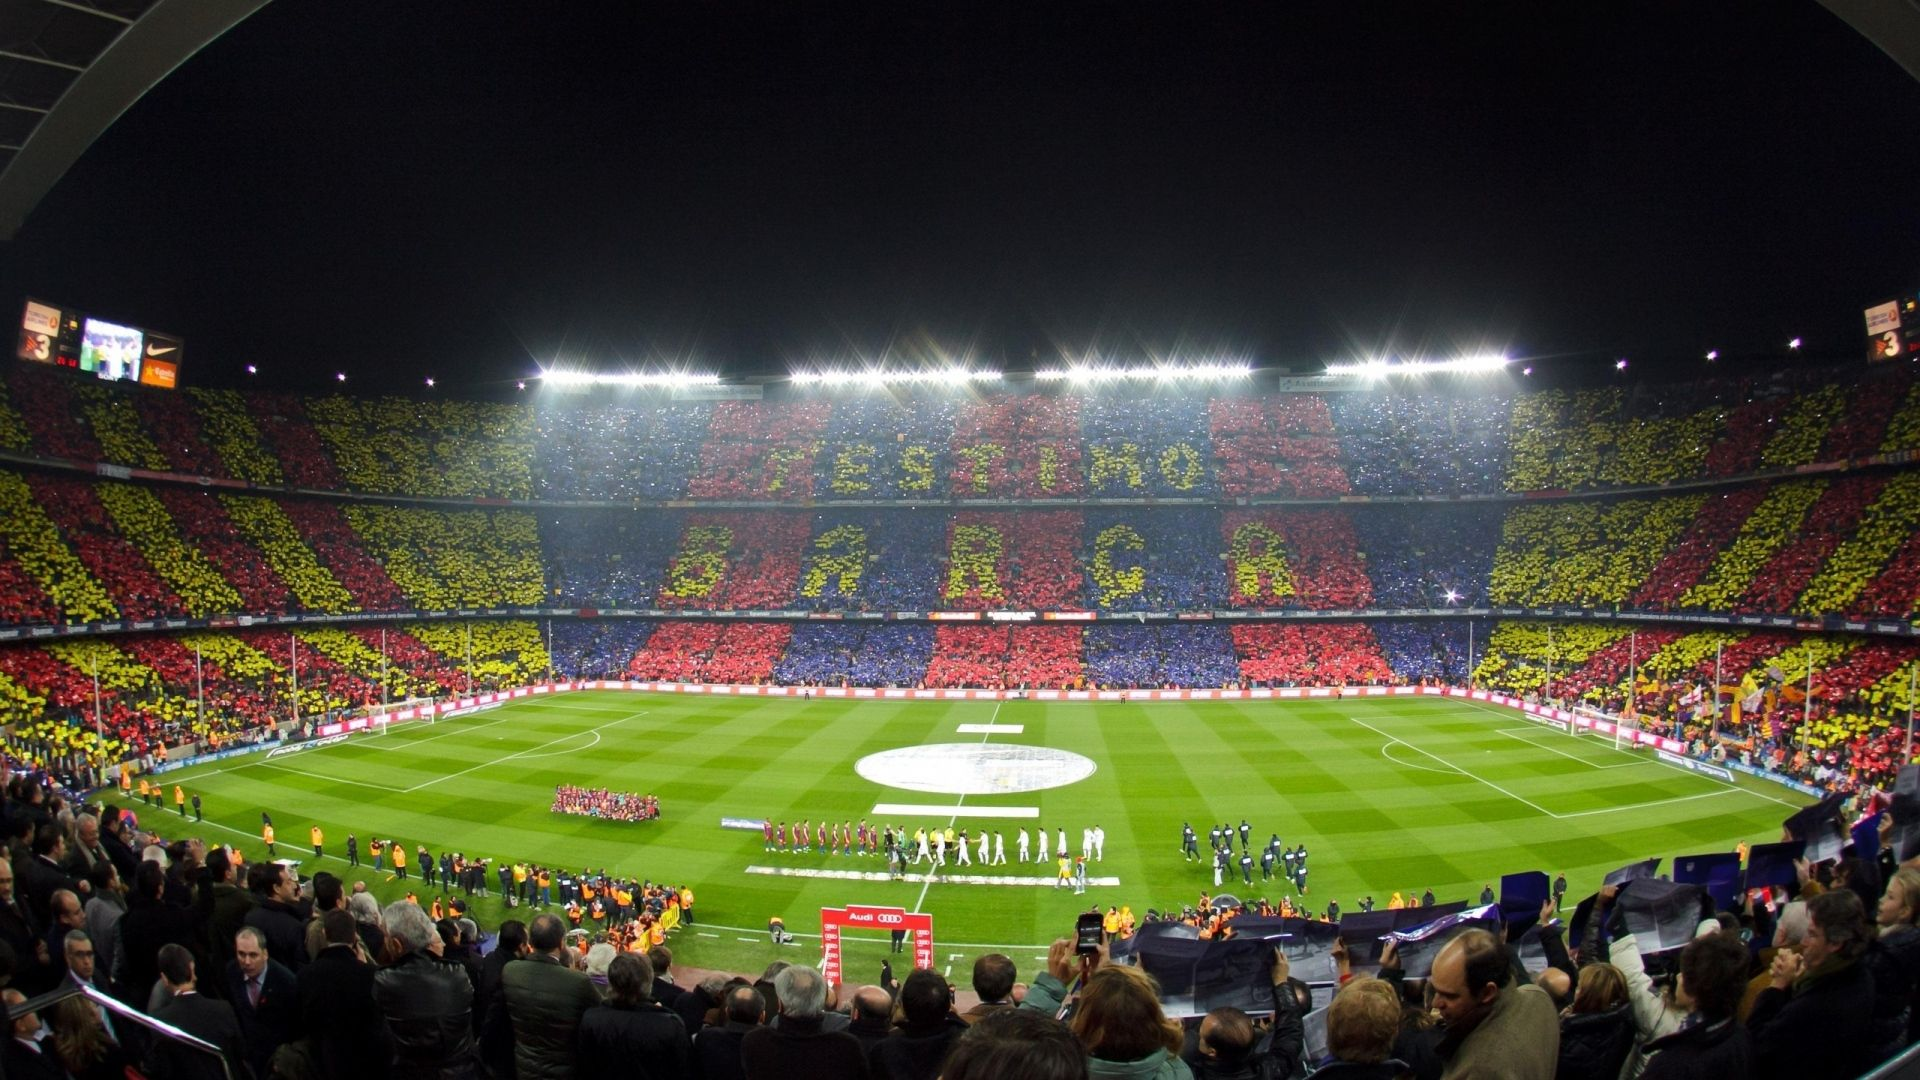 fc barcelona wallpaper hd soccer desktop | hd wallpapers | pinterest